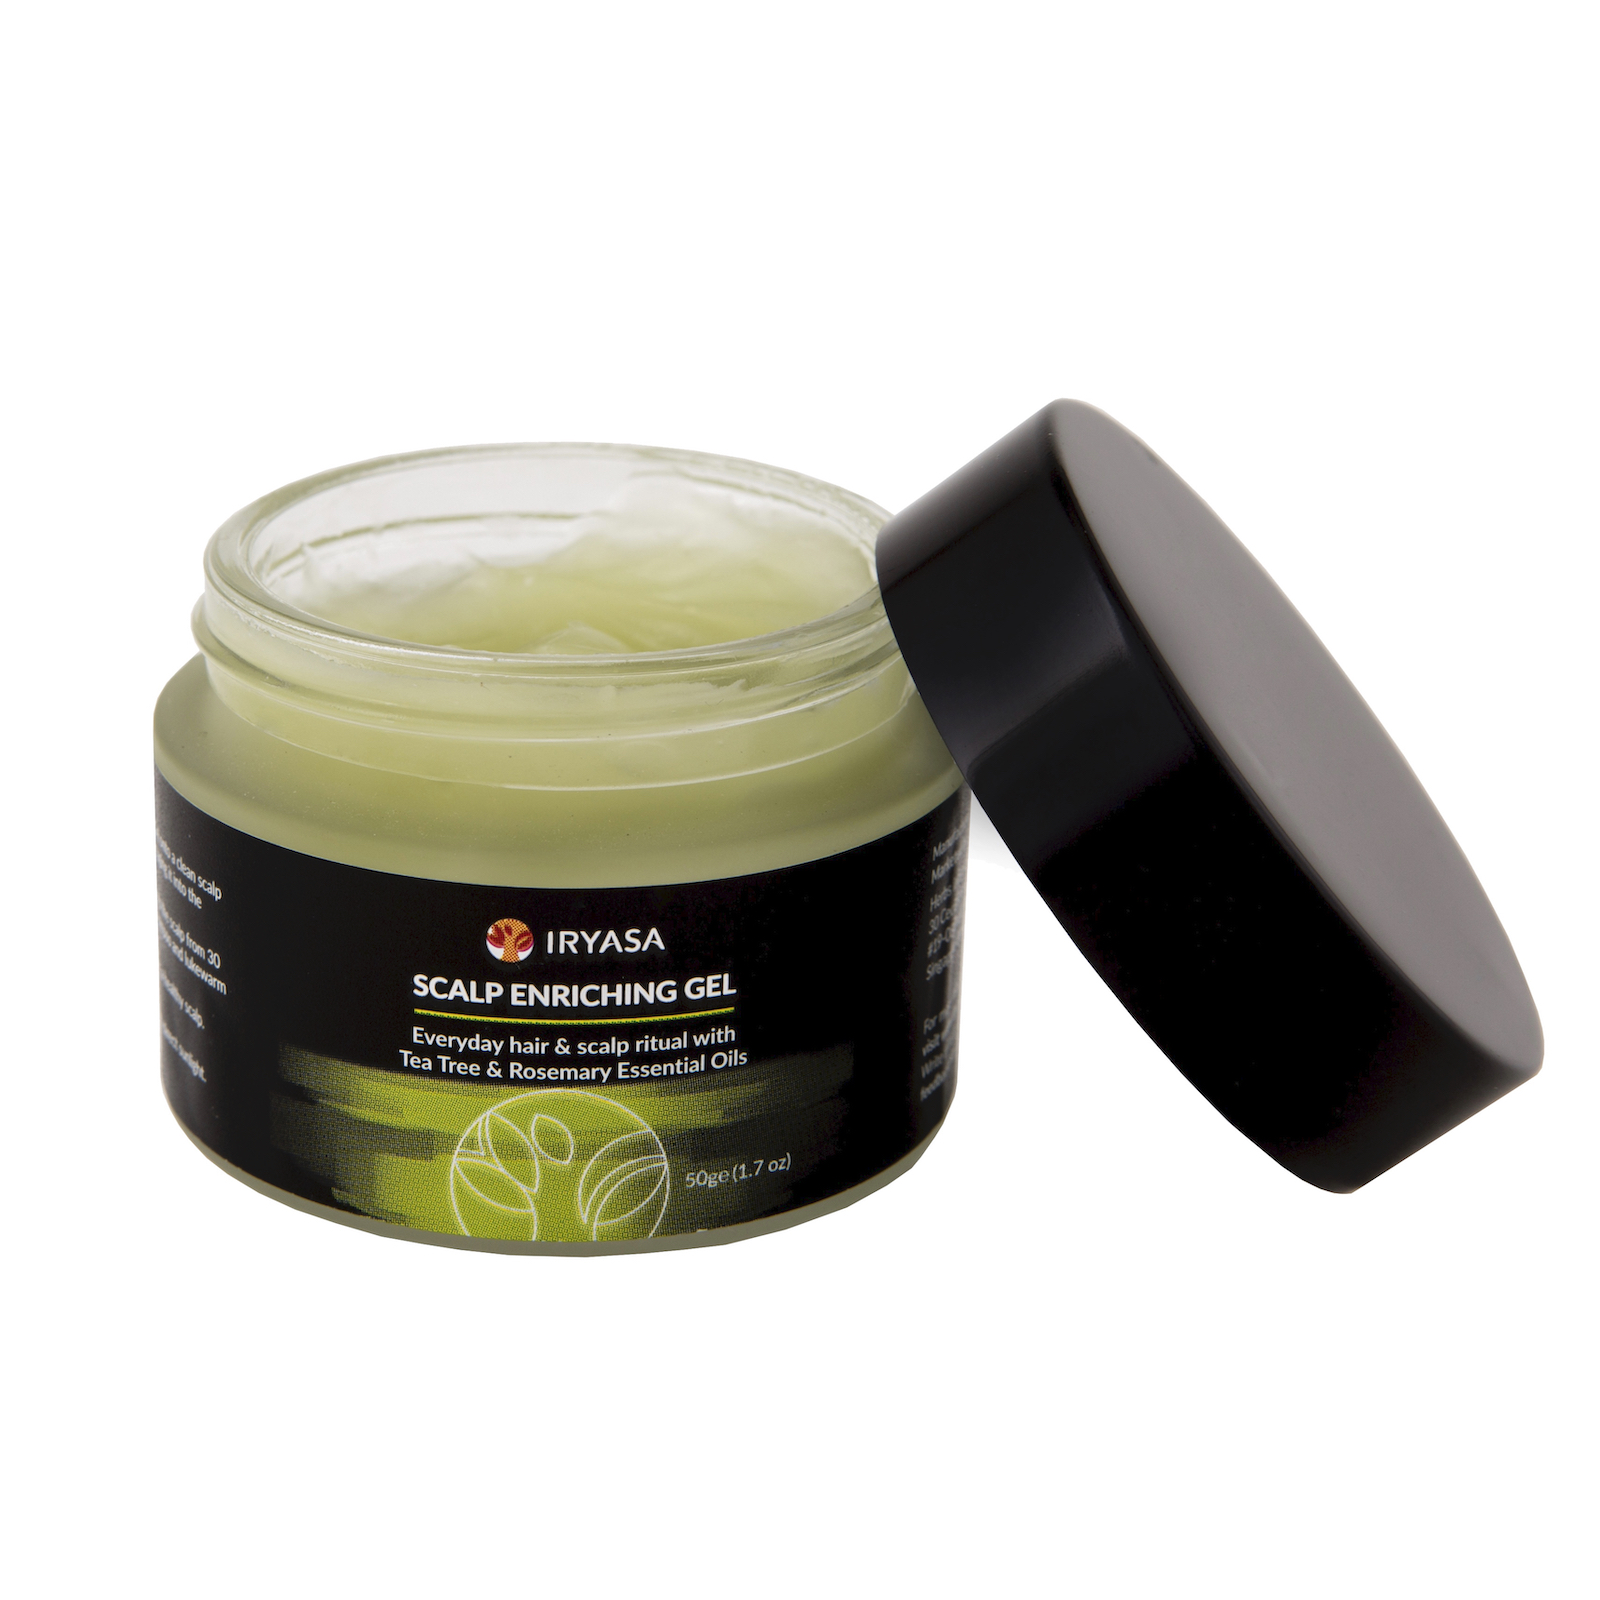 Scalp Enriching Gel 50 gm